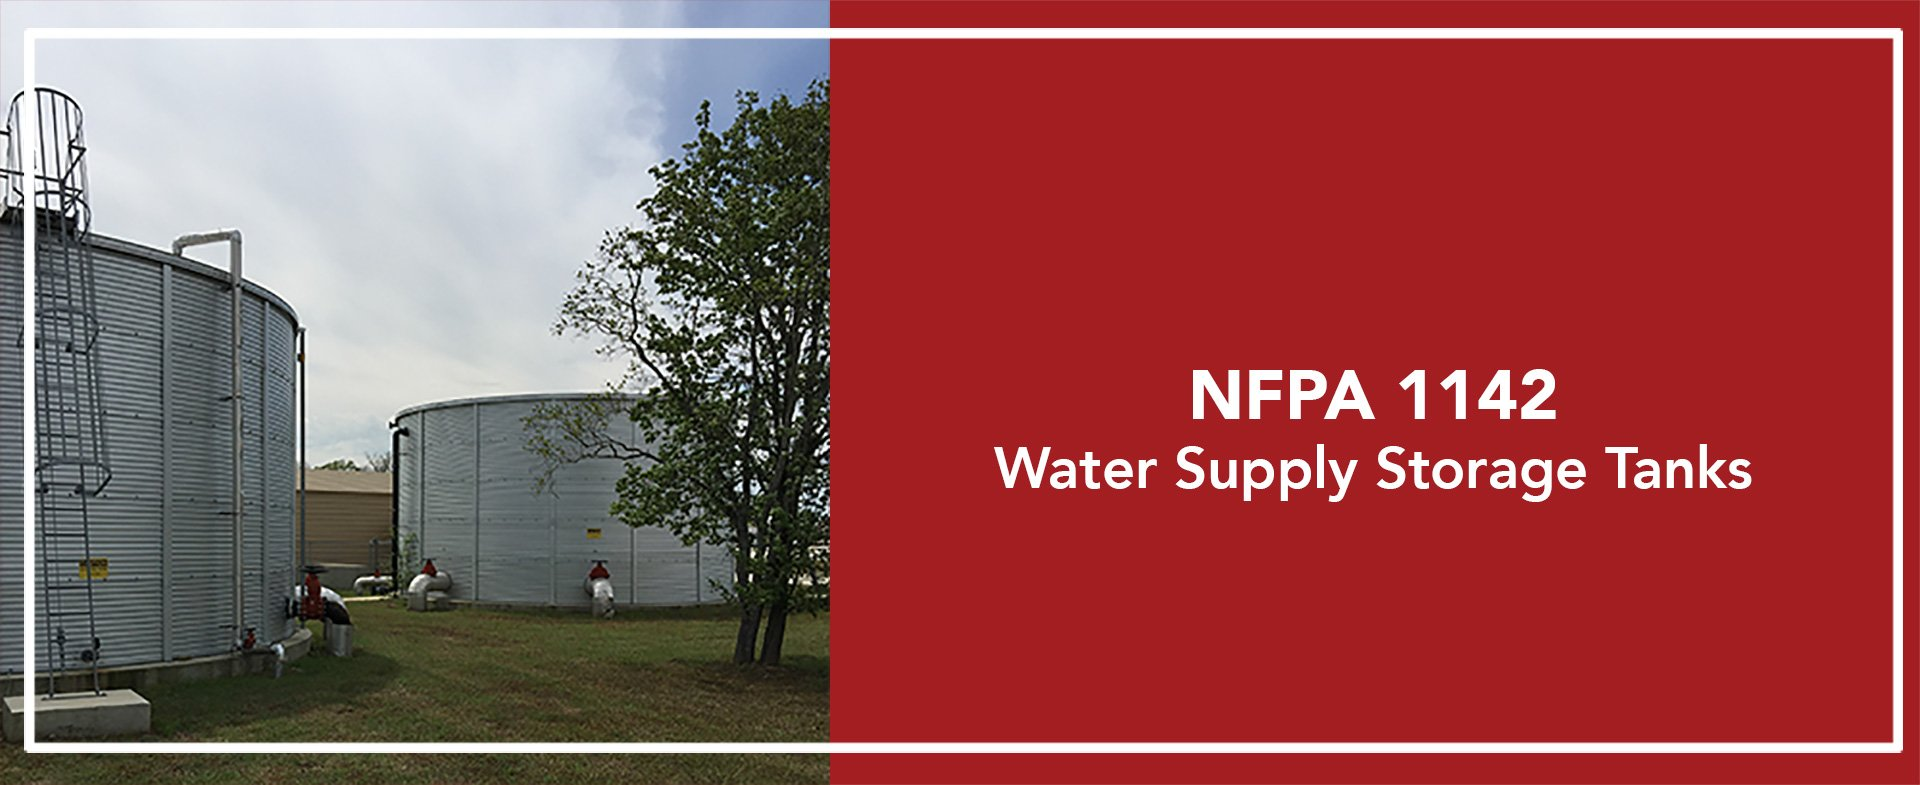 NFPA 1142 water storage tanks